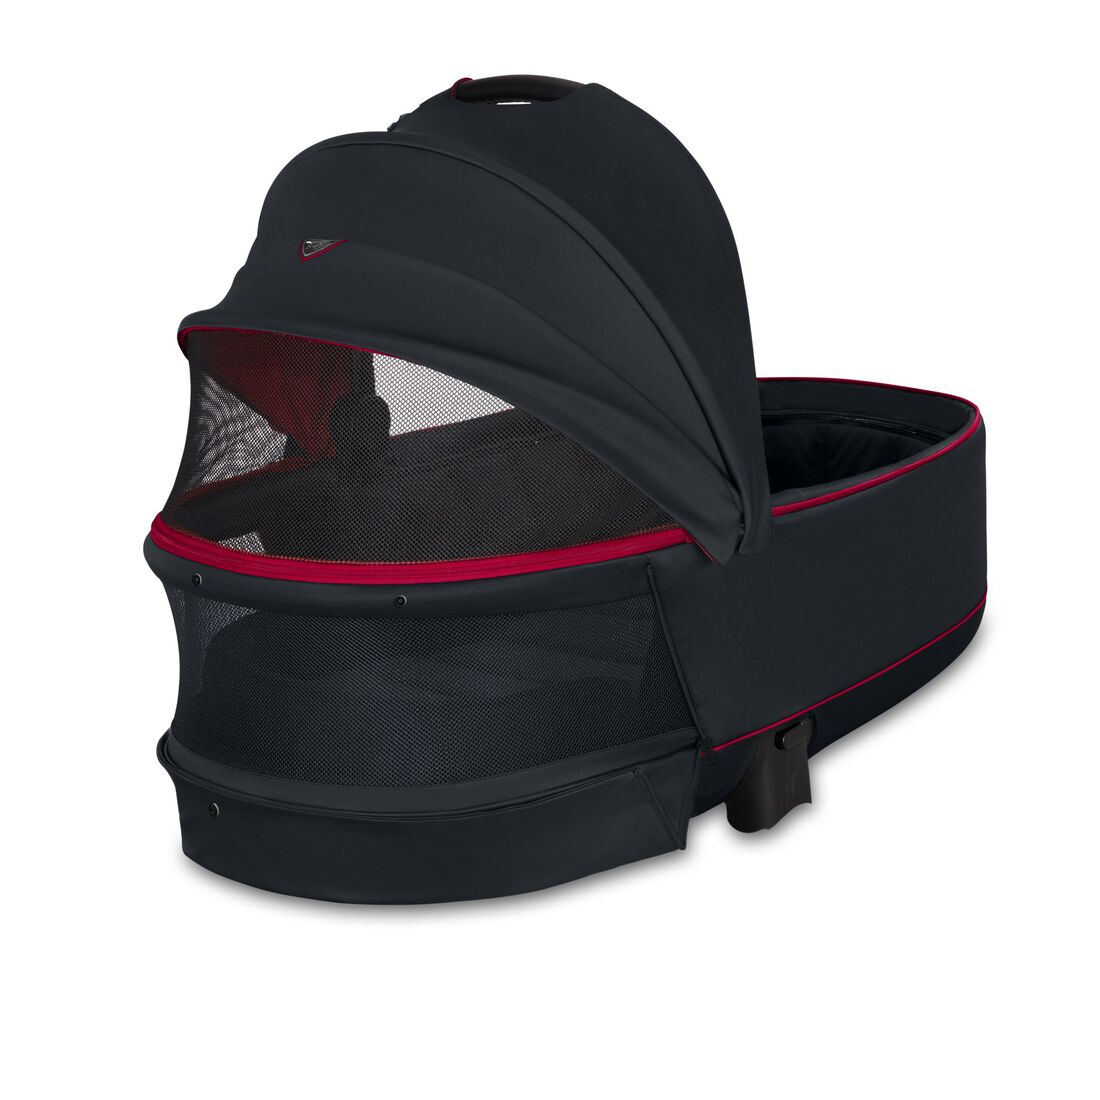 CYBEX Priam Lux Carry Cot - Ferrari Victory Black in Ferrari Victory Black large Bild 3